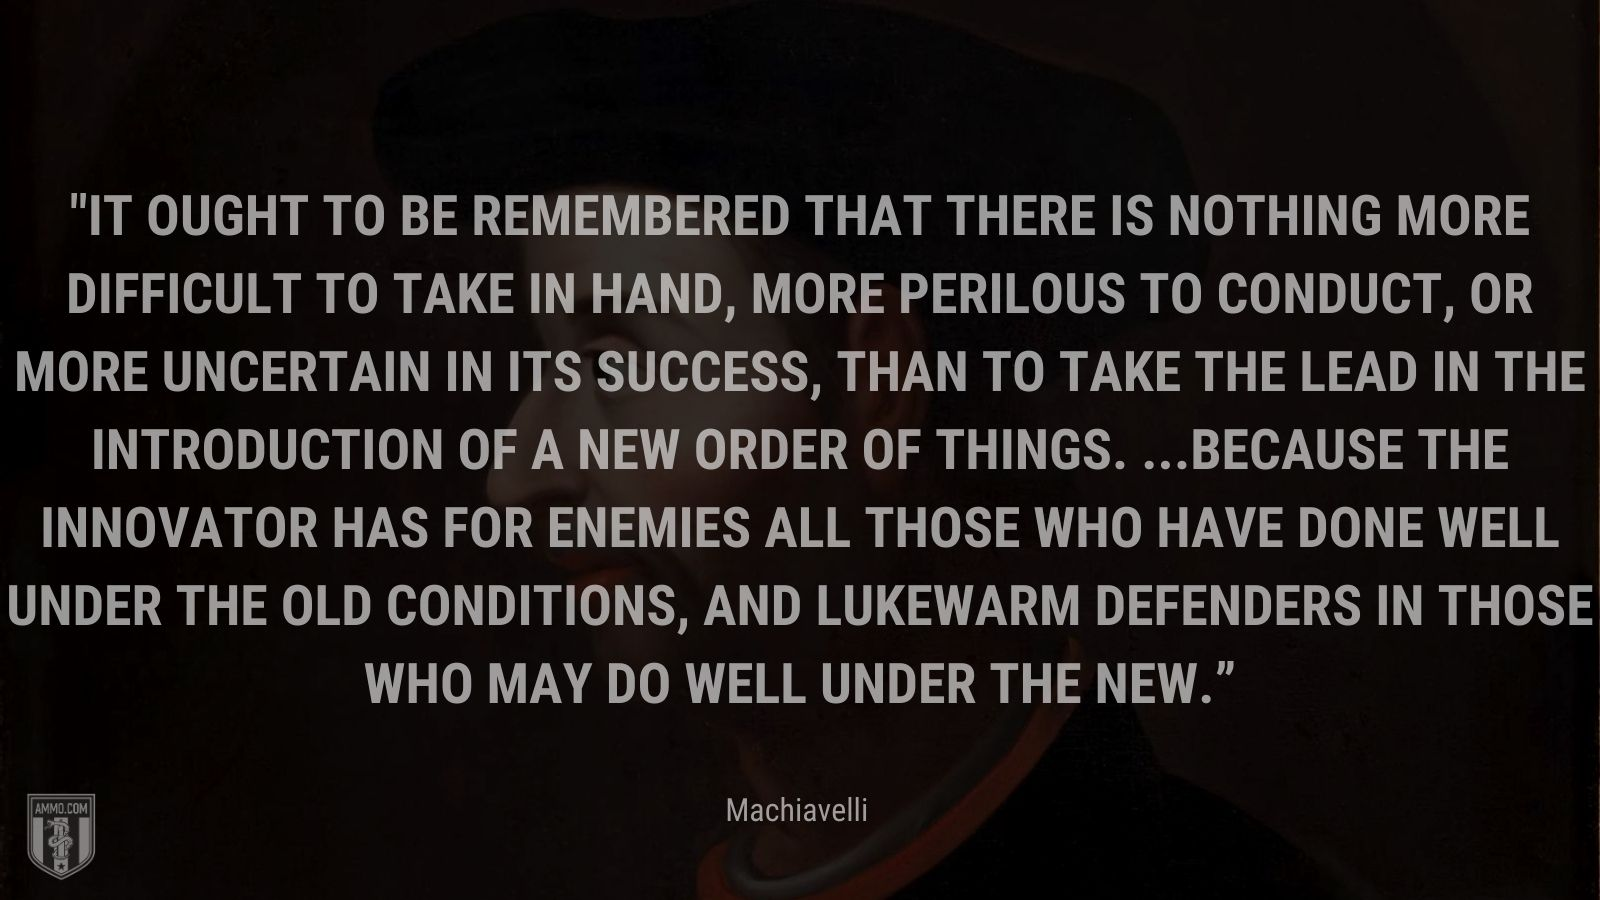 """""""It ought to be remembered that there is nothing more difficult to take in hand, more perilous to conduct, or more uncertain in its success, than to take the lead in the introduction of a new order of things. ...Because the innovator has for enemies all those who have done well under the old conditions, and lukewarm defenders in those who may do well under the new."""" - Machiavelli"""